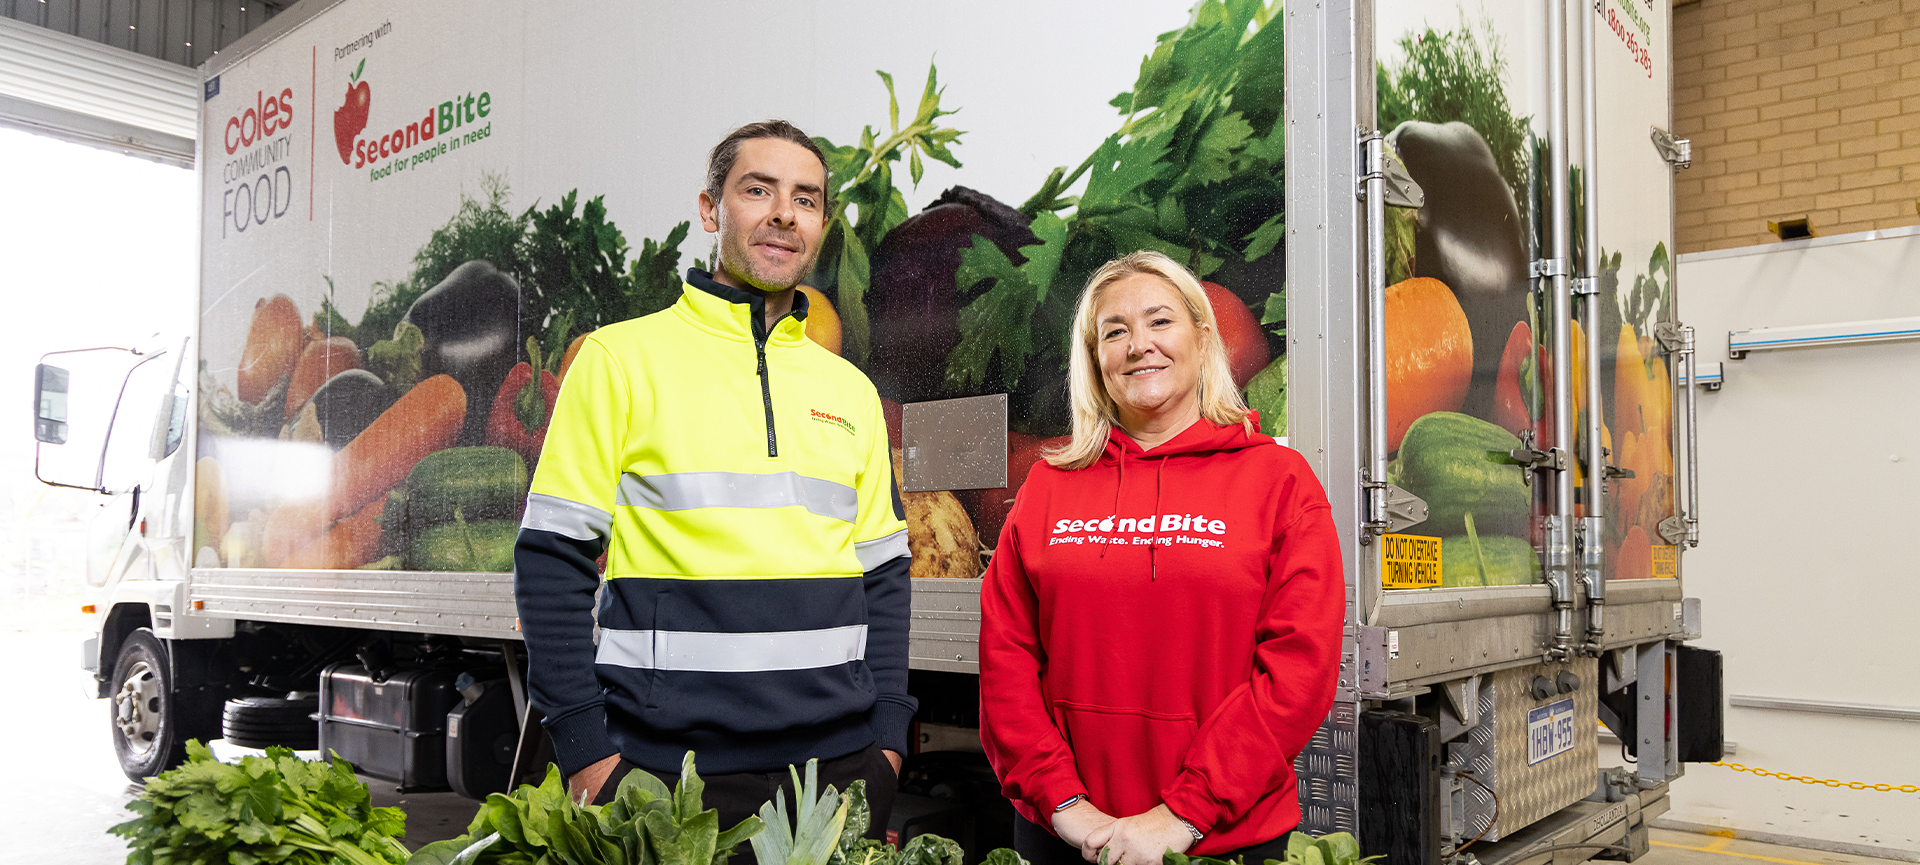 Zoe Fulcher in red jumper standing with Lyndon in high vis in front of the SecondBite truck